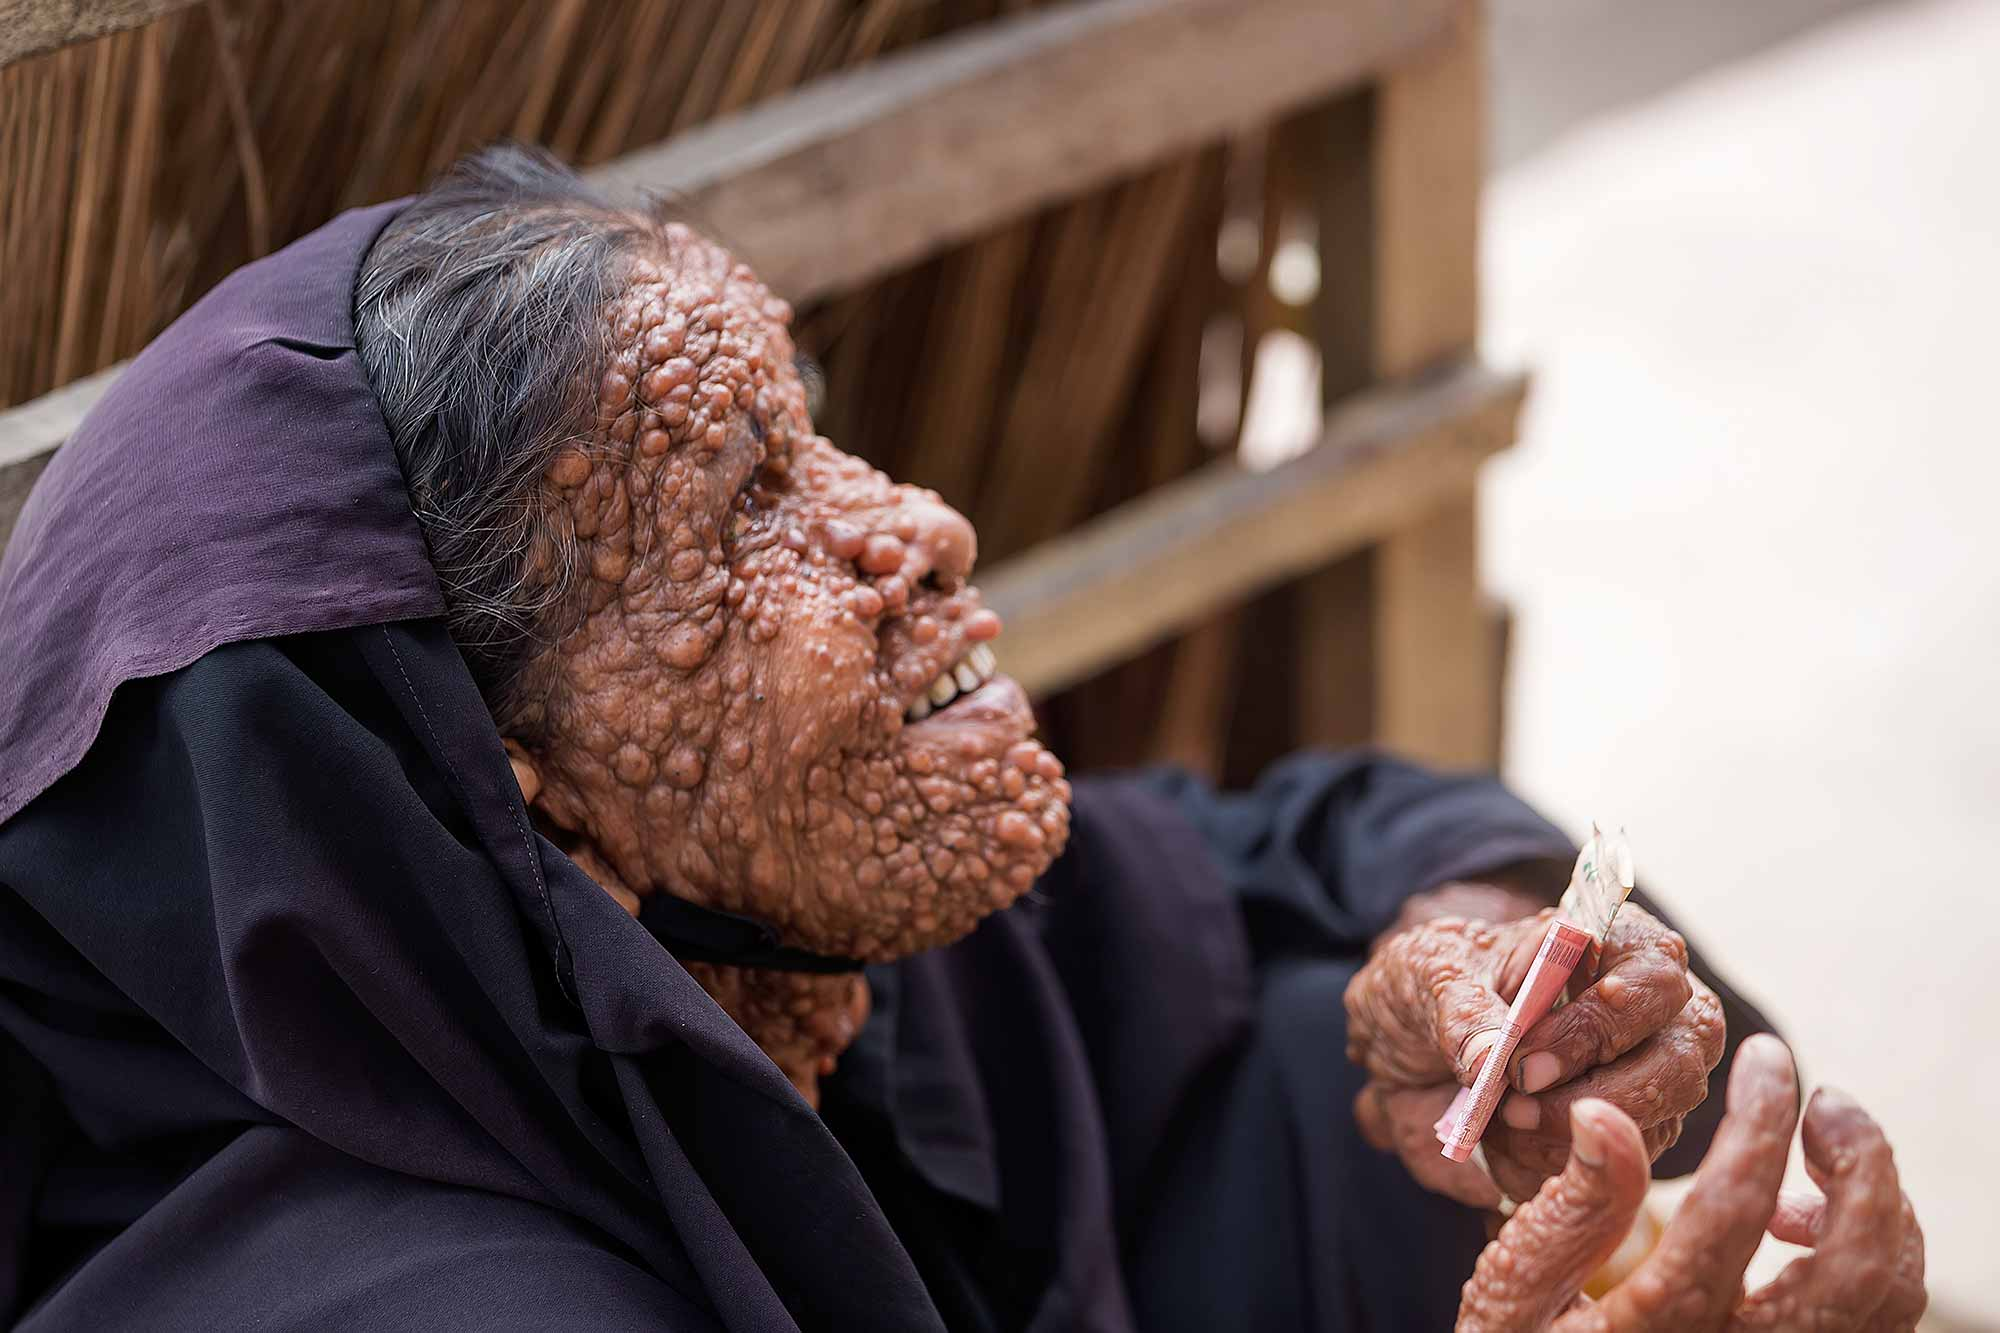 A woman in the streets of Dhaka with Neurofibromatosis. © Ulli Maier & Nisa Maier